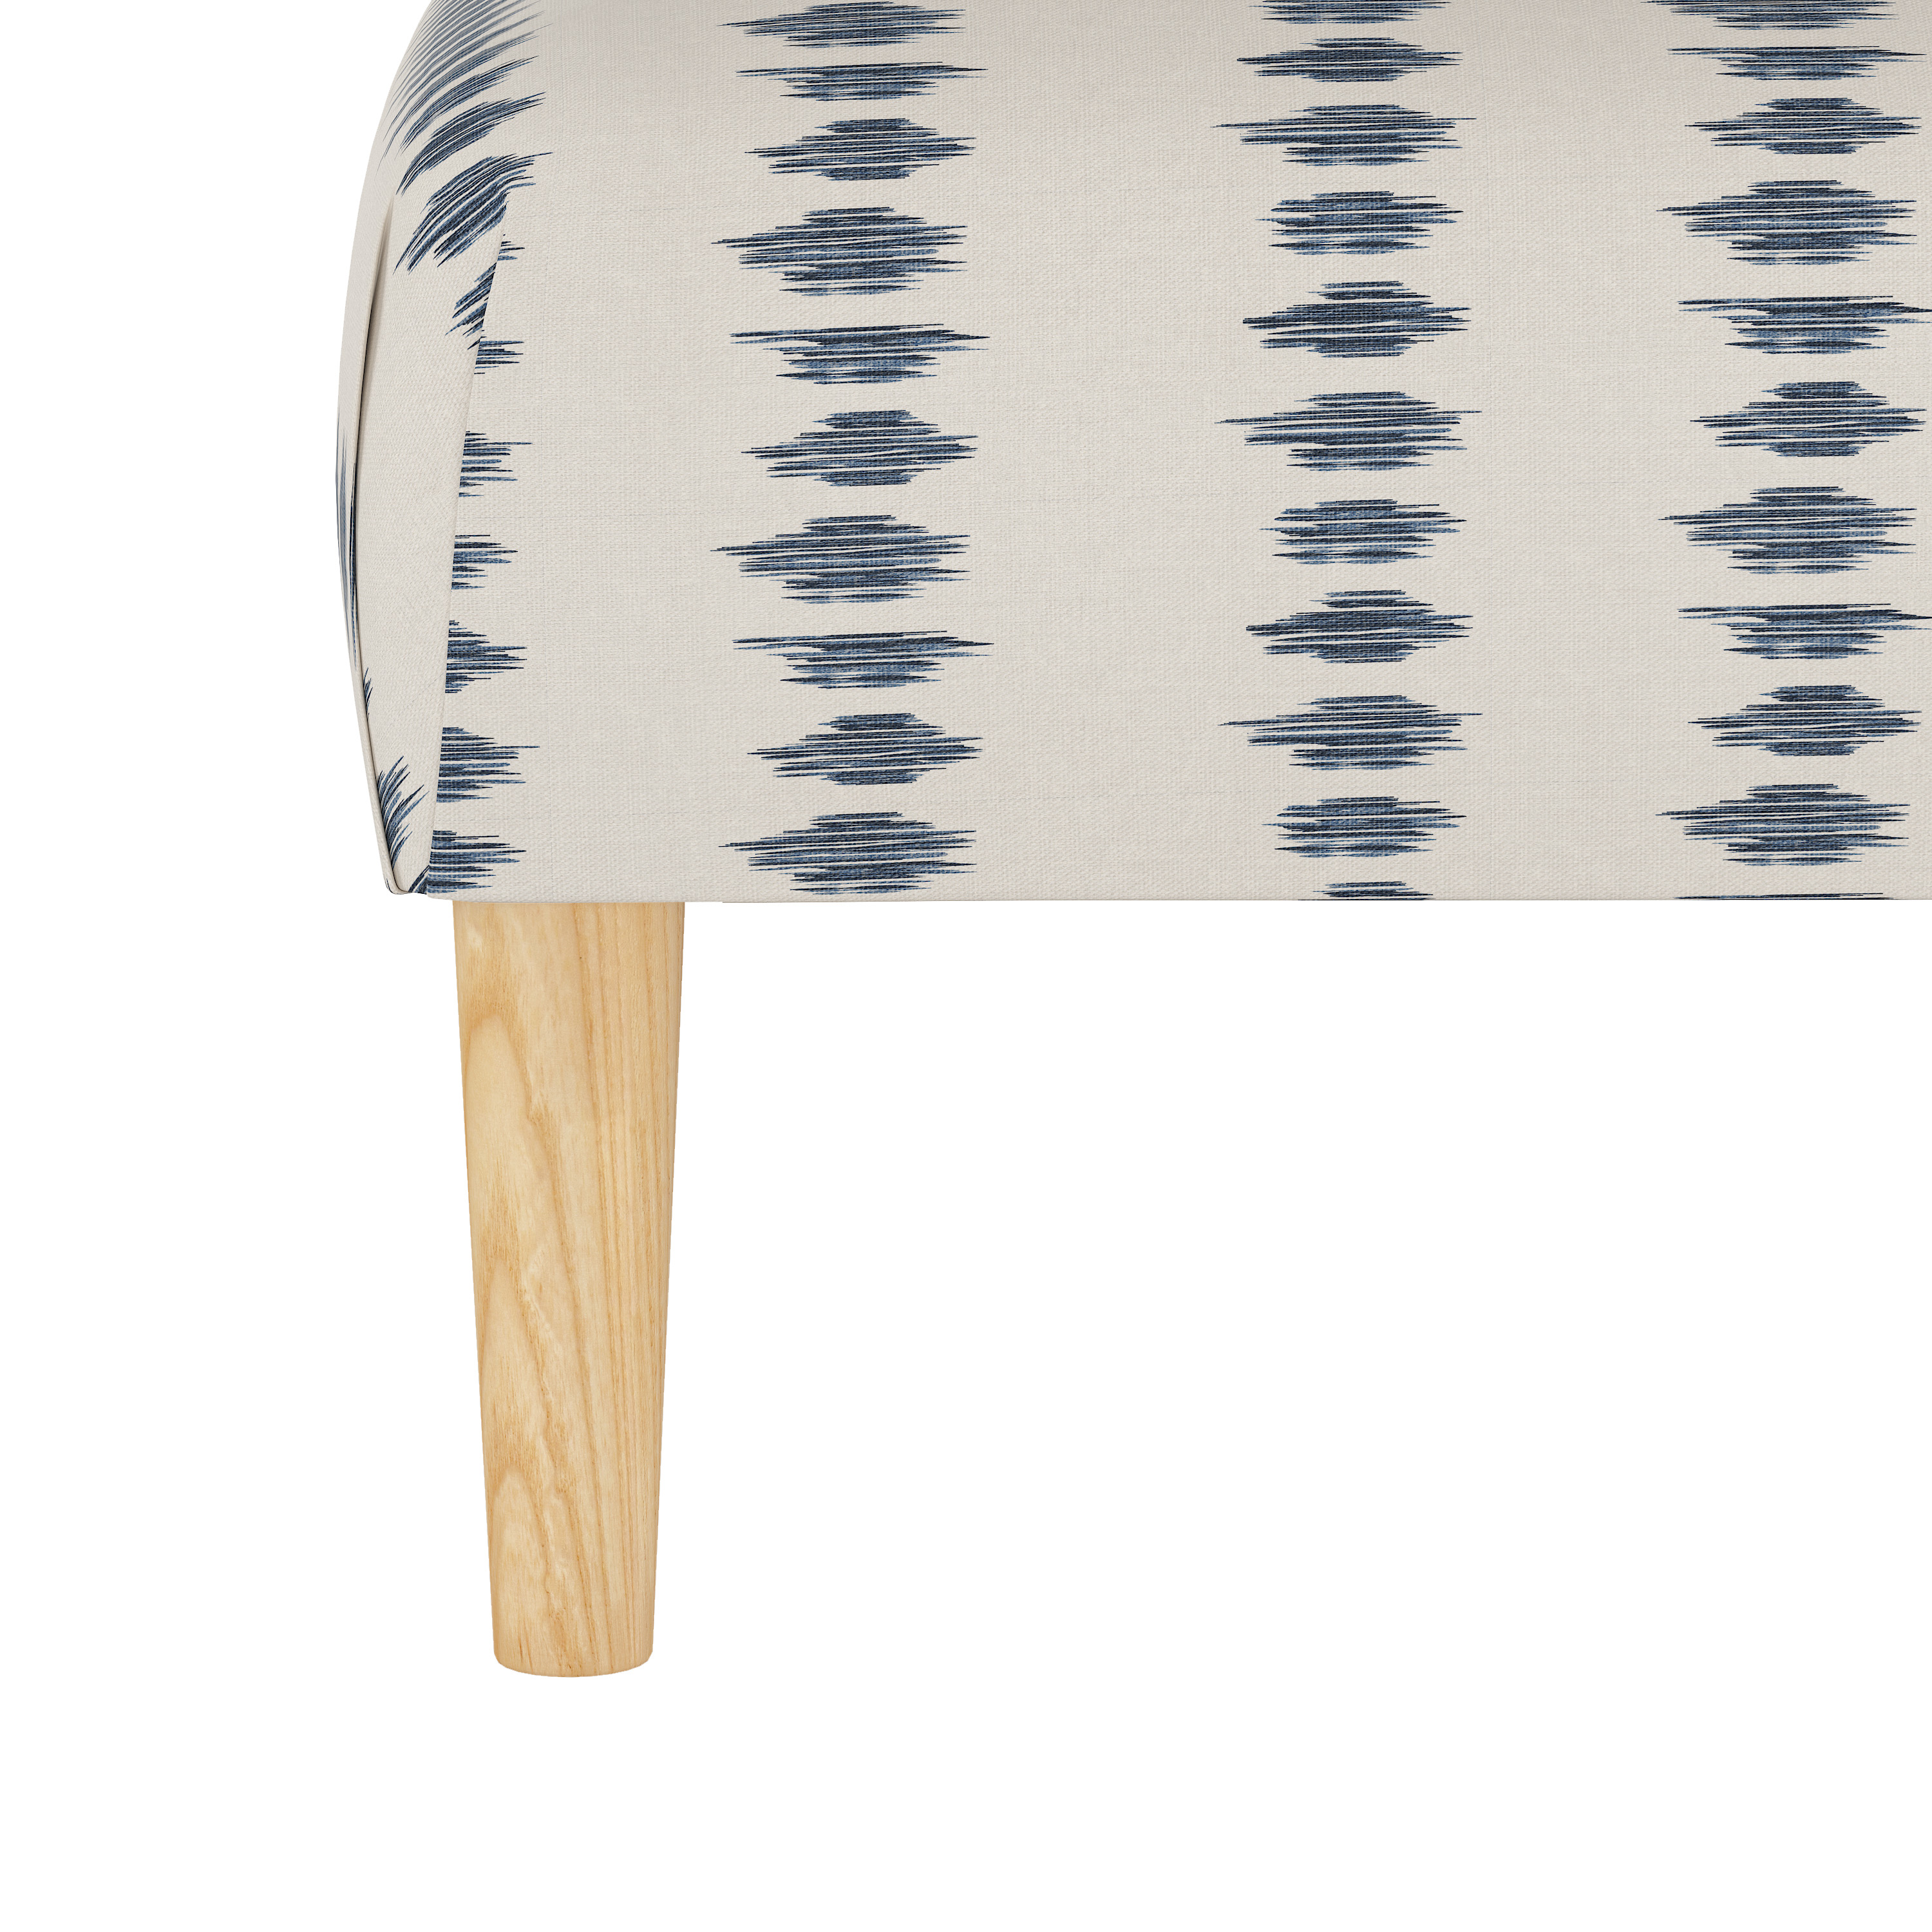 Algren Cocktail Ottoman with Cone Legs in Ikat Scribble Slate Oga